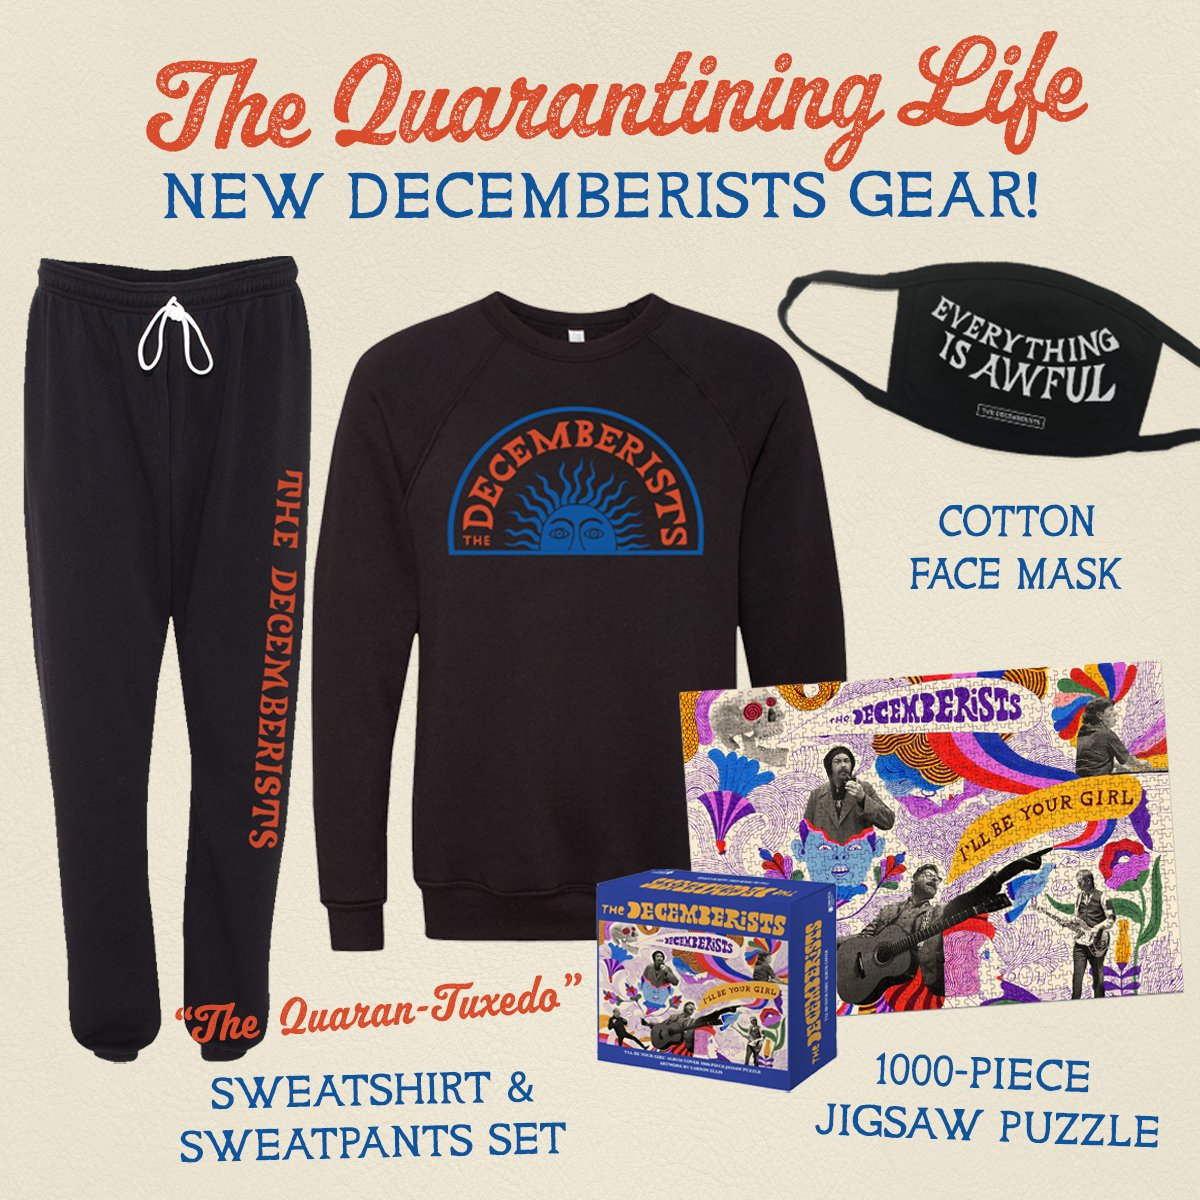 New gear for your quarantining life! Pick up a cozy sweatshirt / sweatpants set, a cotton face mask, and a 1000-piece jigsaw puzzle with 'I'll Be Your Girl' album art. All proceeds of the mask benefit the @MusiCares COVID-19 Relief Fund. Pre-order now: https://t.co/tQXvZEQgx3 https://t.co/5lKidpJUbZ